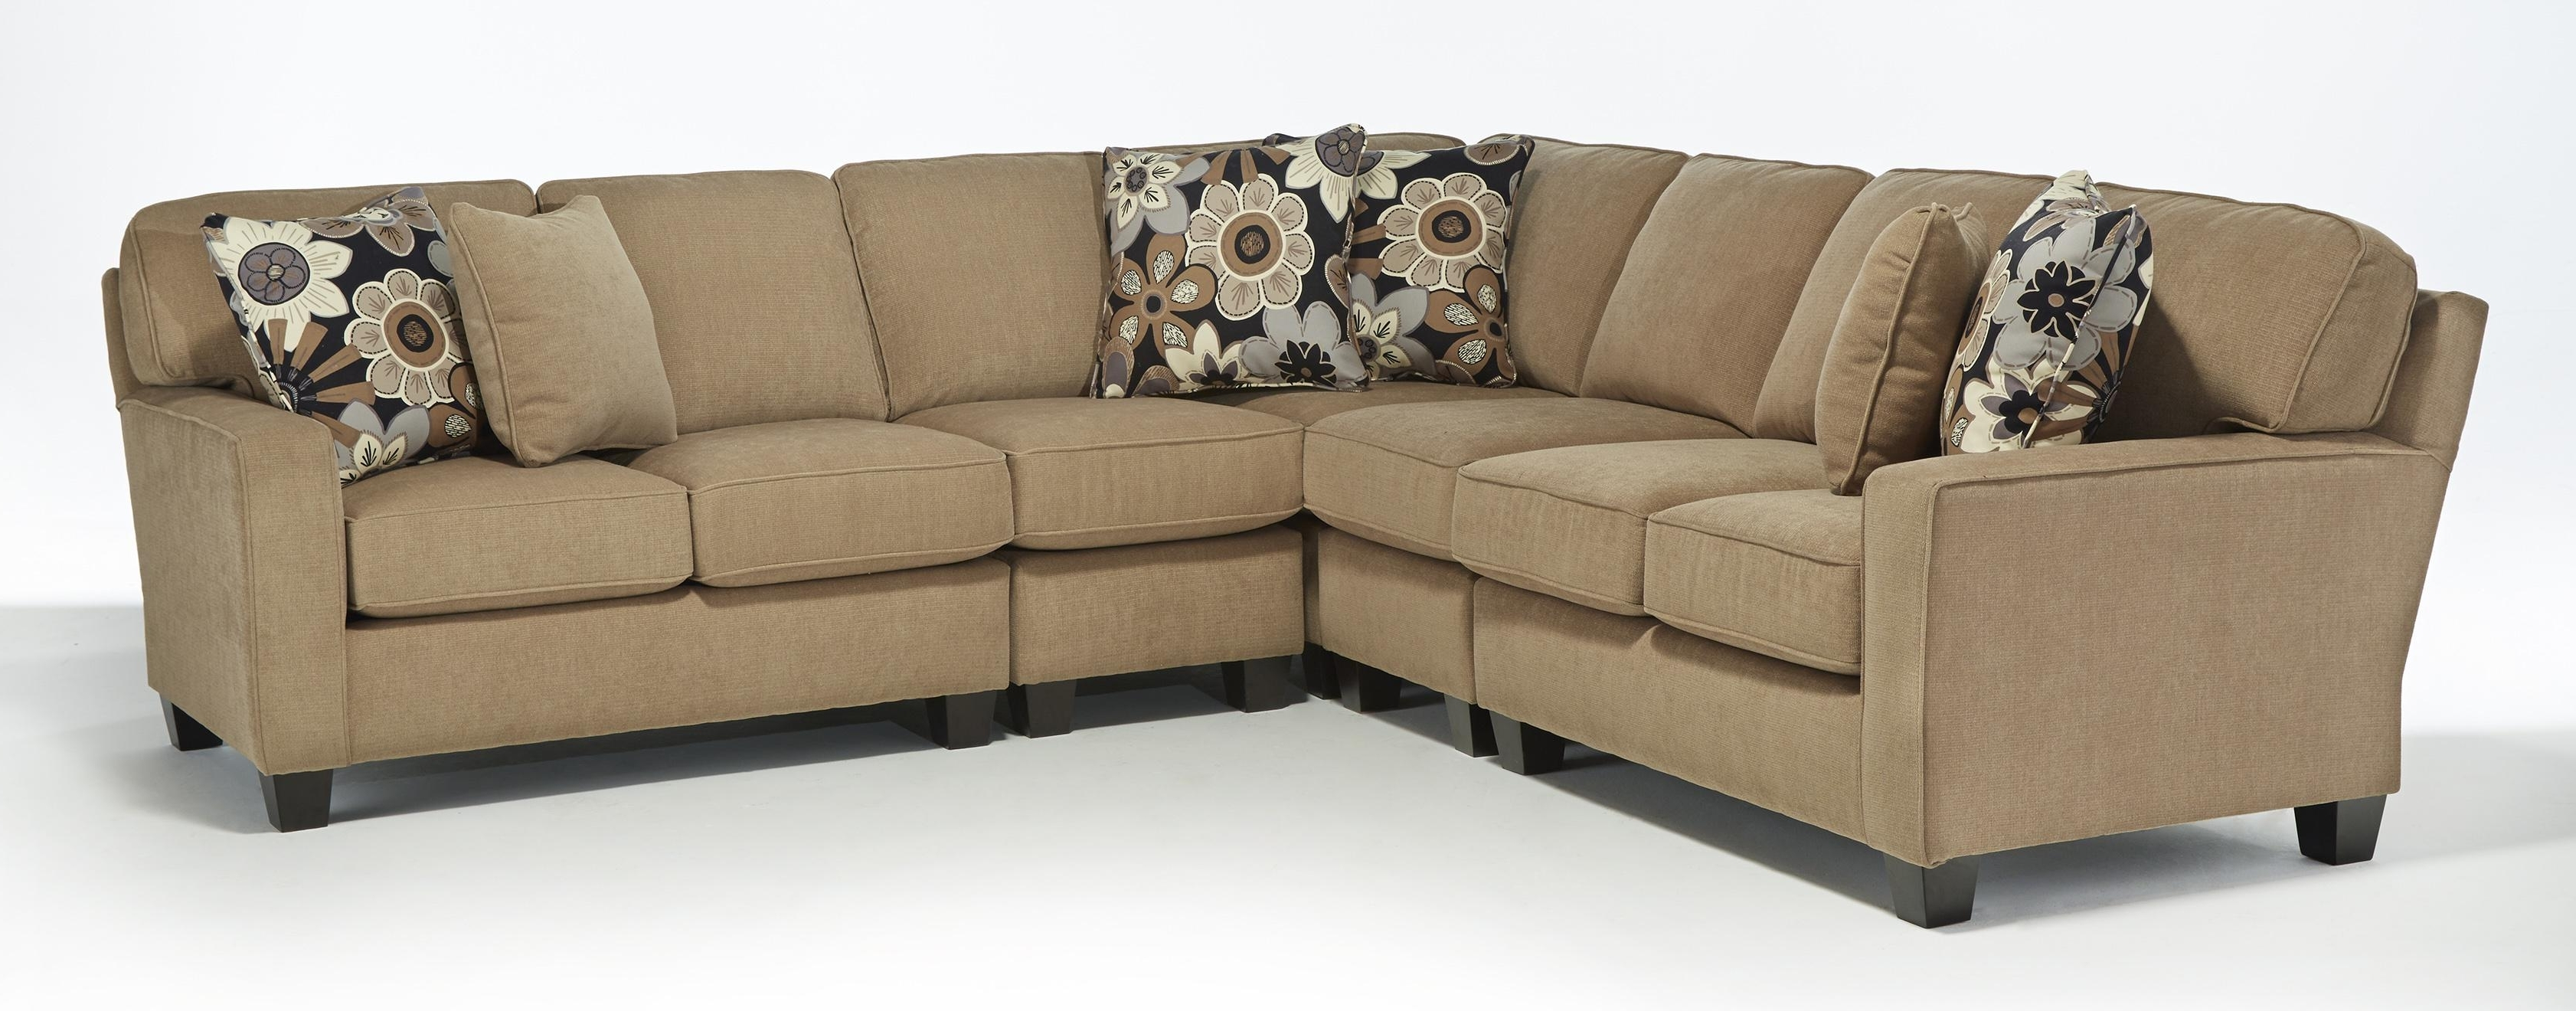 Five Piece Customizable Sectional Sofa With Track Arms And Wood Throughout Current Custom Made Sectional Sofas (View 9 of 20)